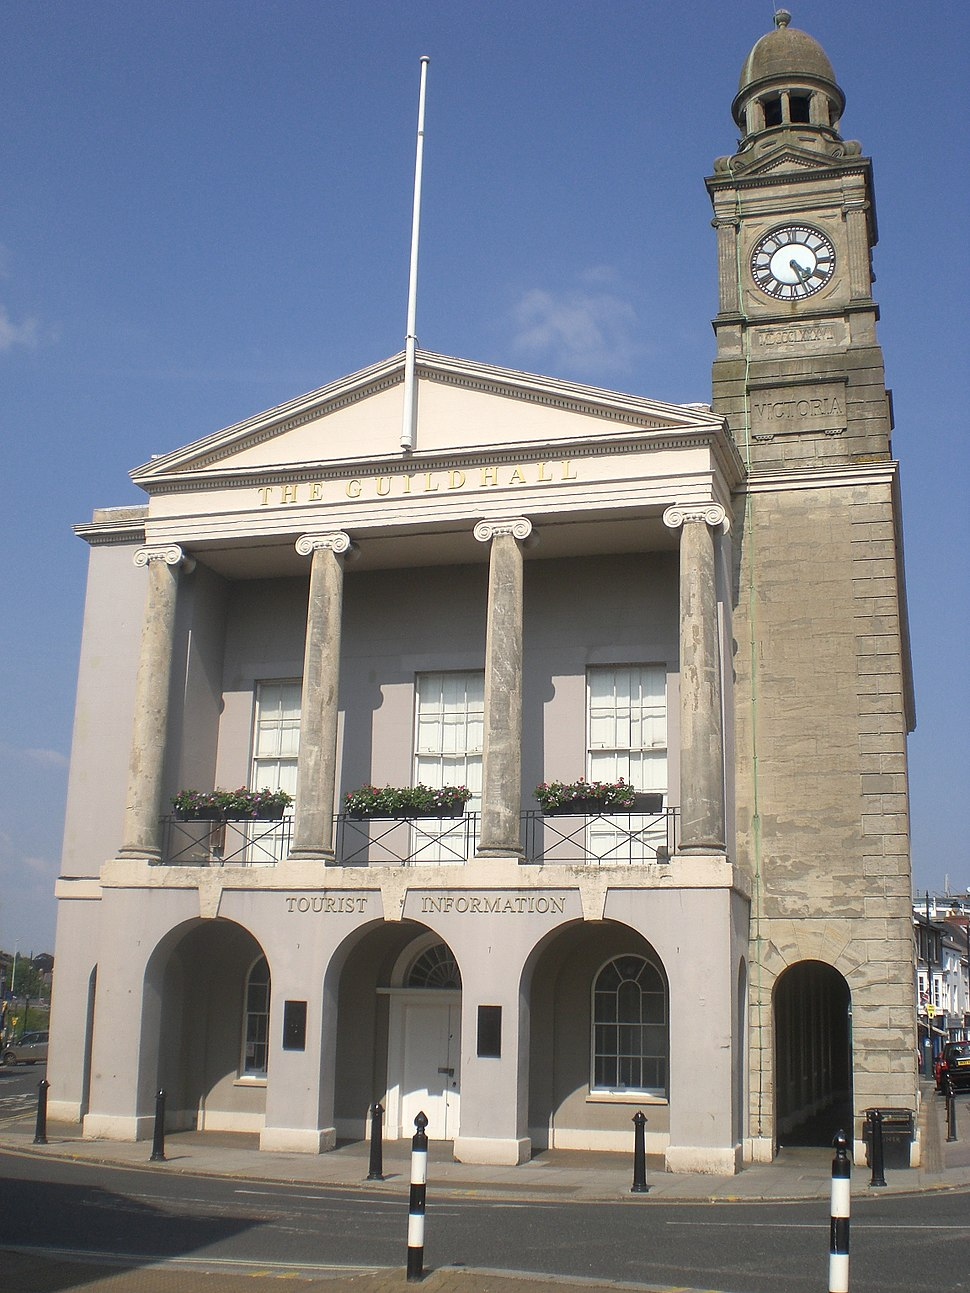 The Guildhall in Newport